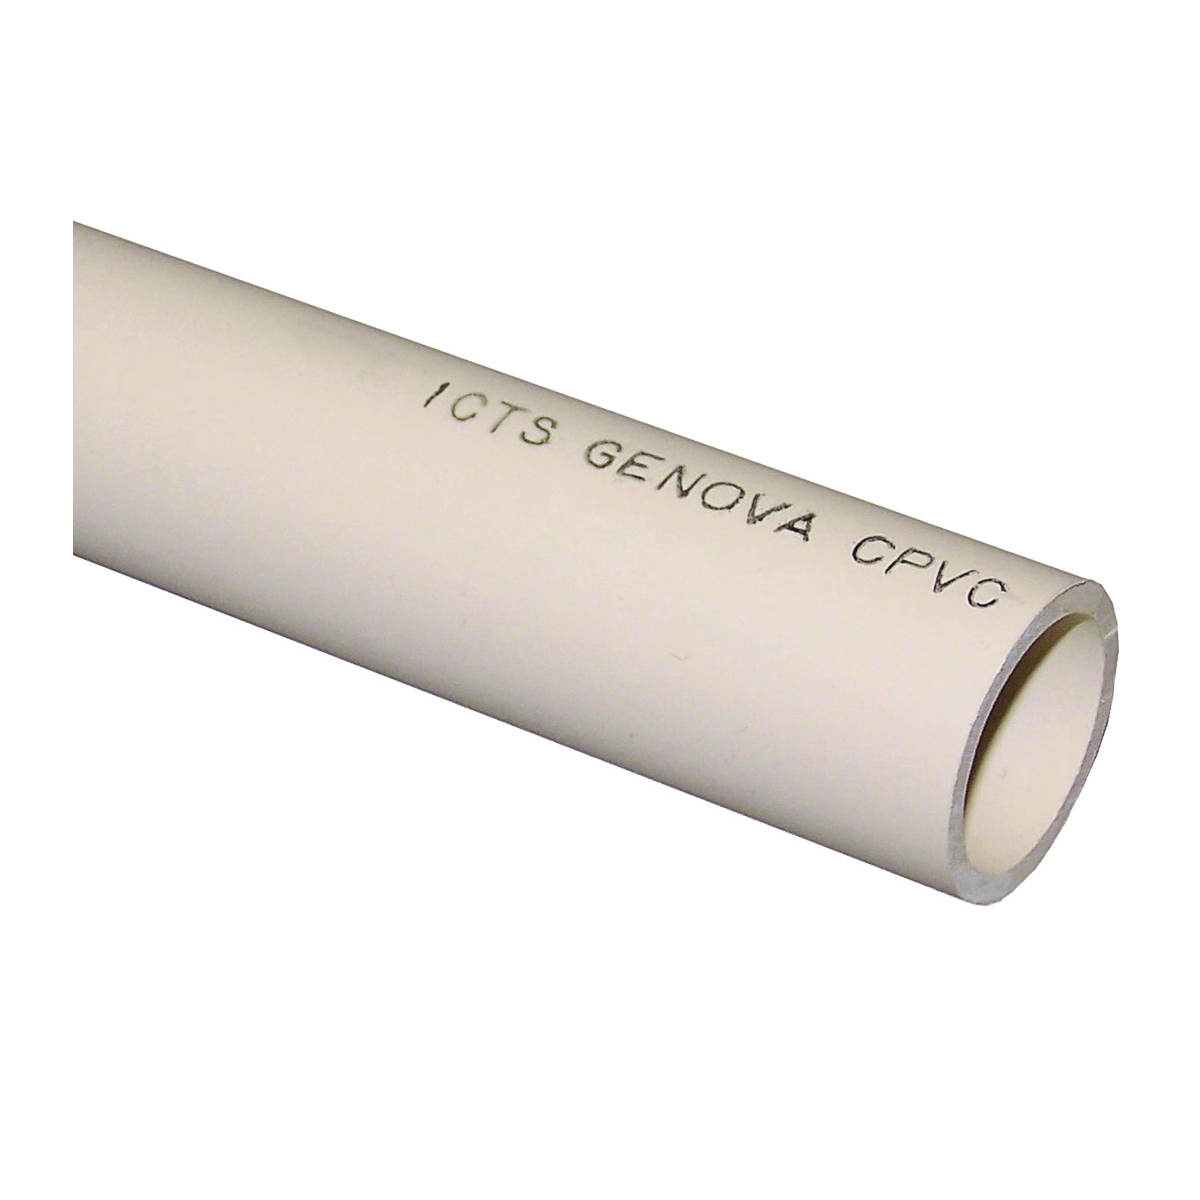 Picture of GENOVA 500 Series 44915/560010 Tubing, 1 in, 10 ft L, Plain, Buff